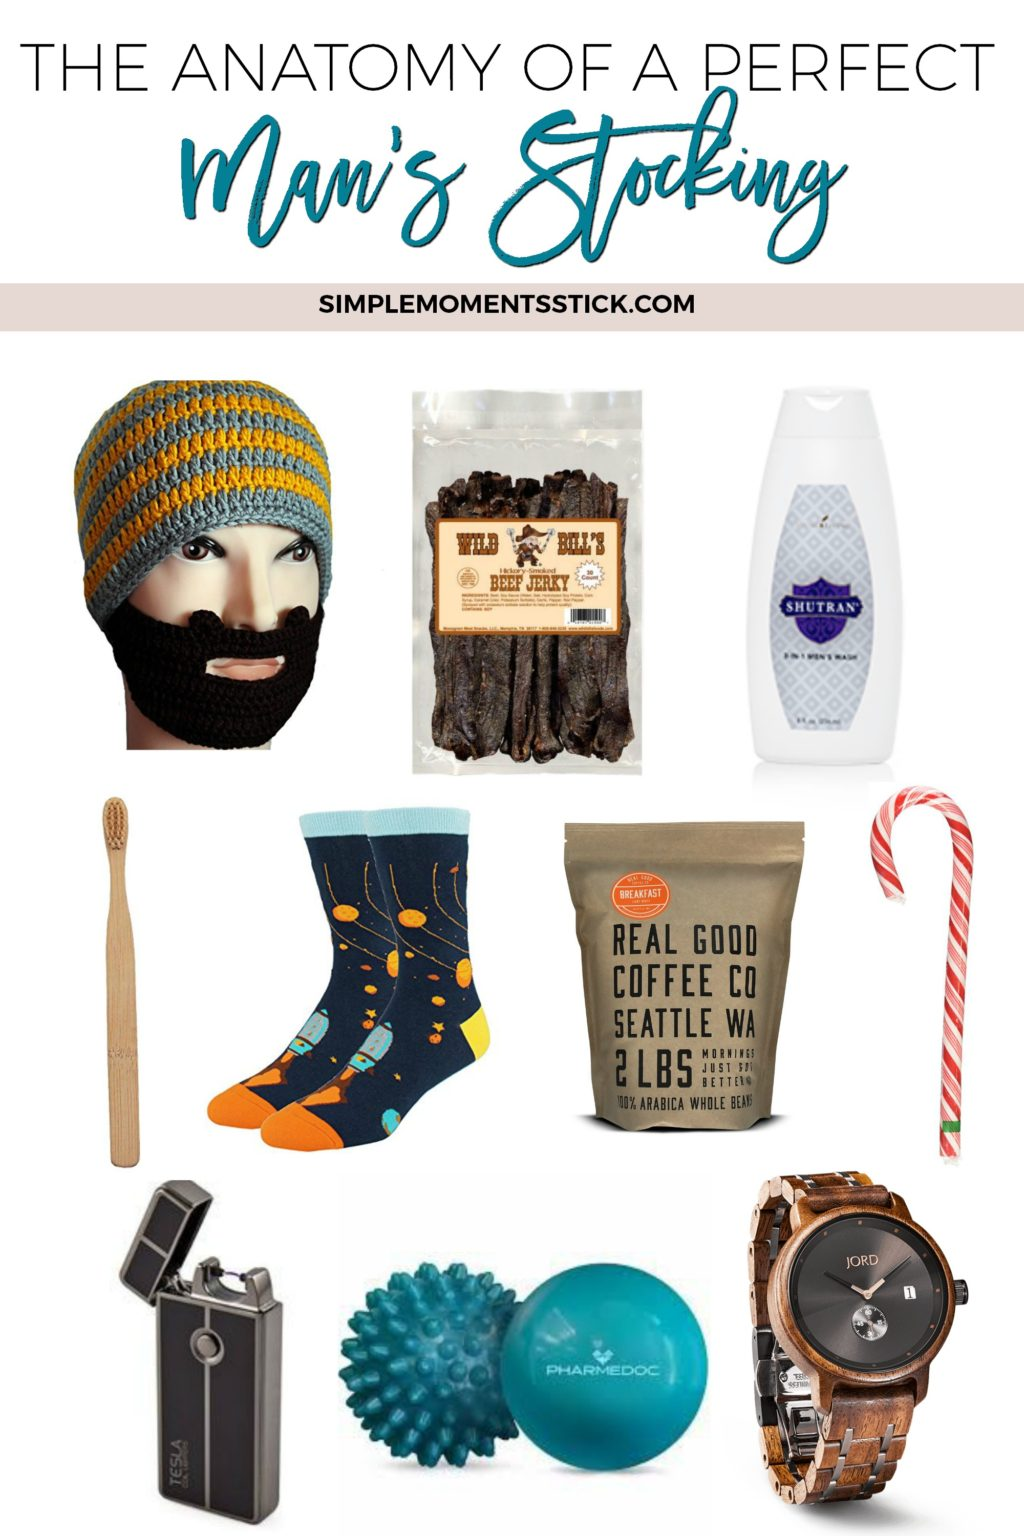 Putting together the perfect man's stocking doesn't have to be hard. Click through to find out great guidelines for putting together a perfect man's stocking!